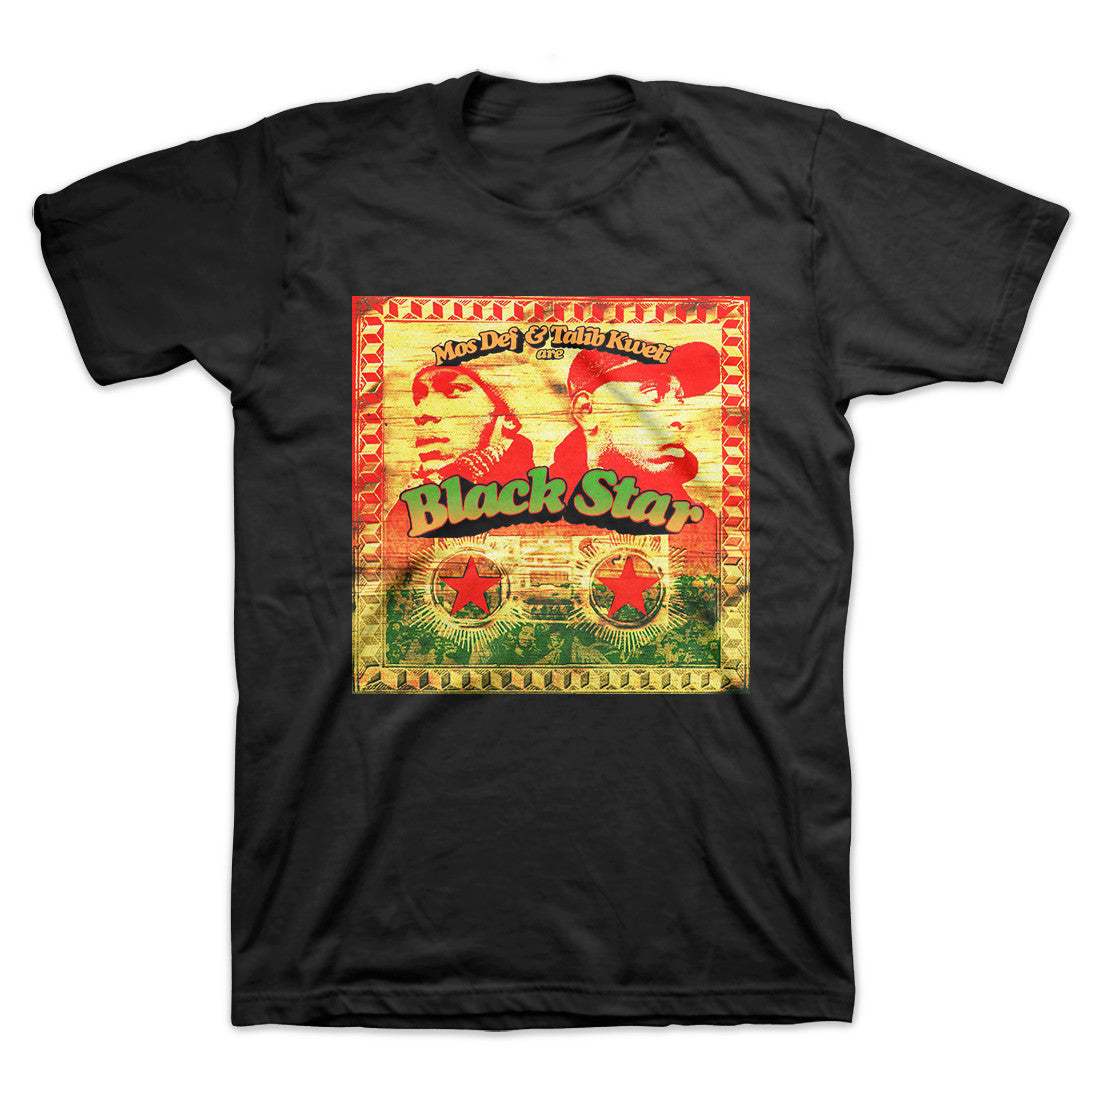 Mos Def & Talib Kweli - Black Star Album Cover Men's Shirt, Black - The Giant Peach